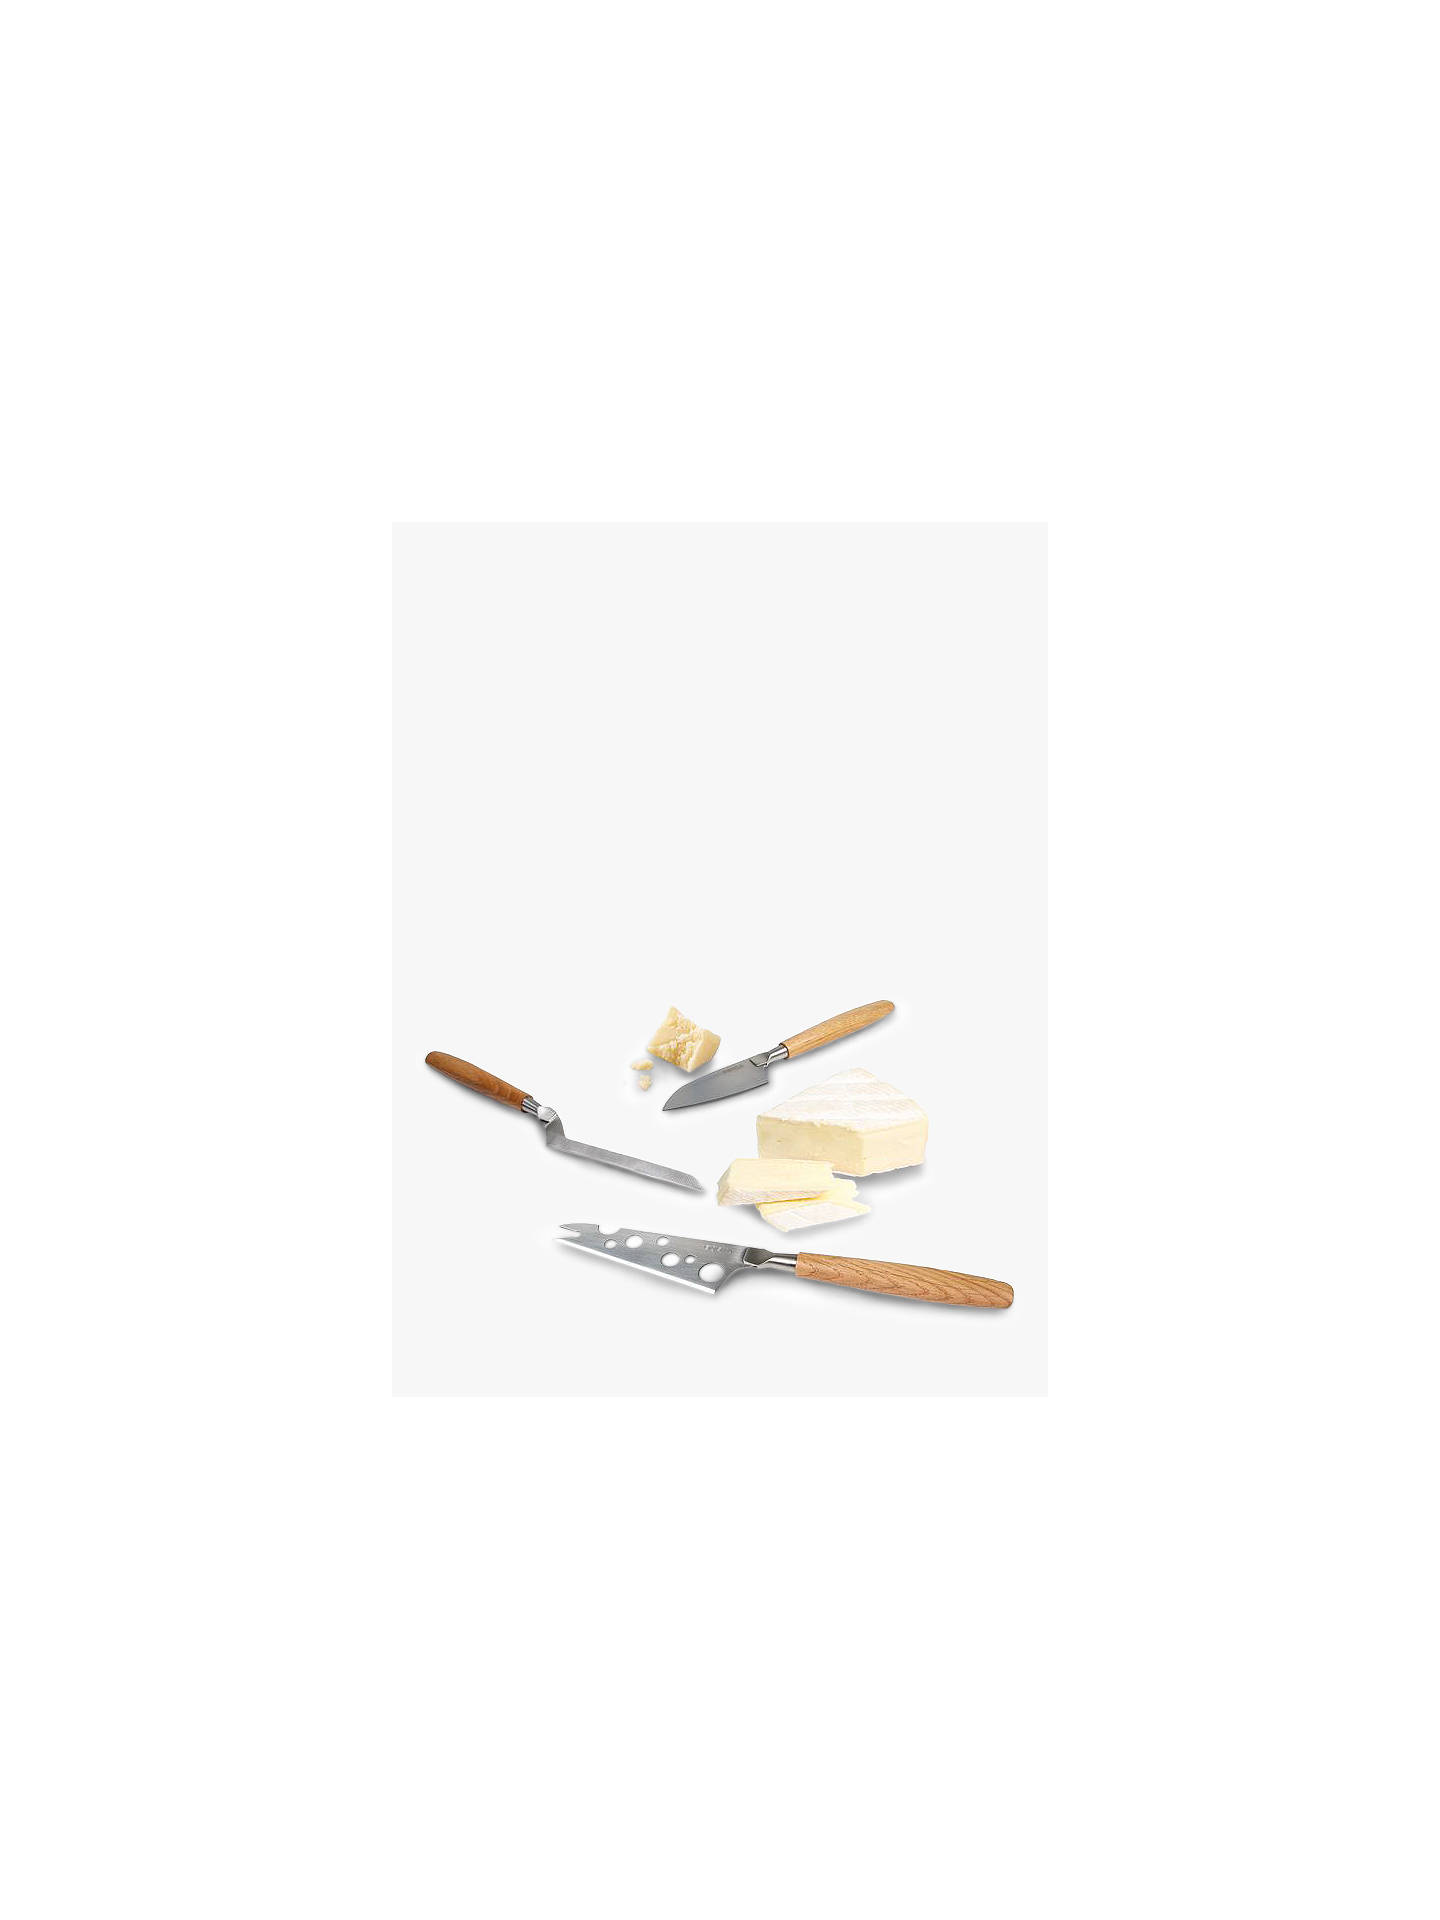 BuyBoska Oak Wood Handle Stainless Steel Cheese Knives, Set of 3 Online at johnlewis.com